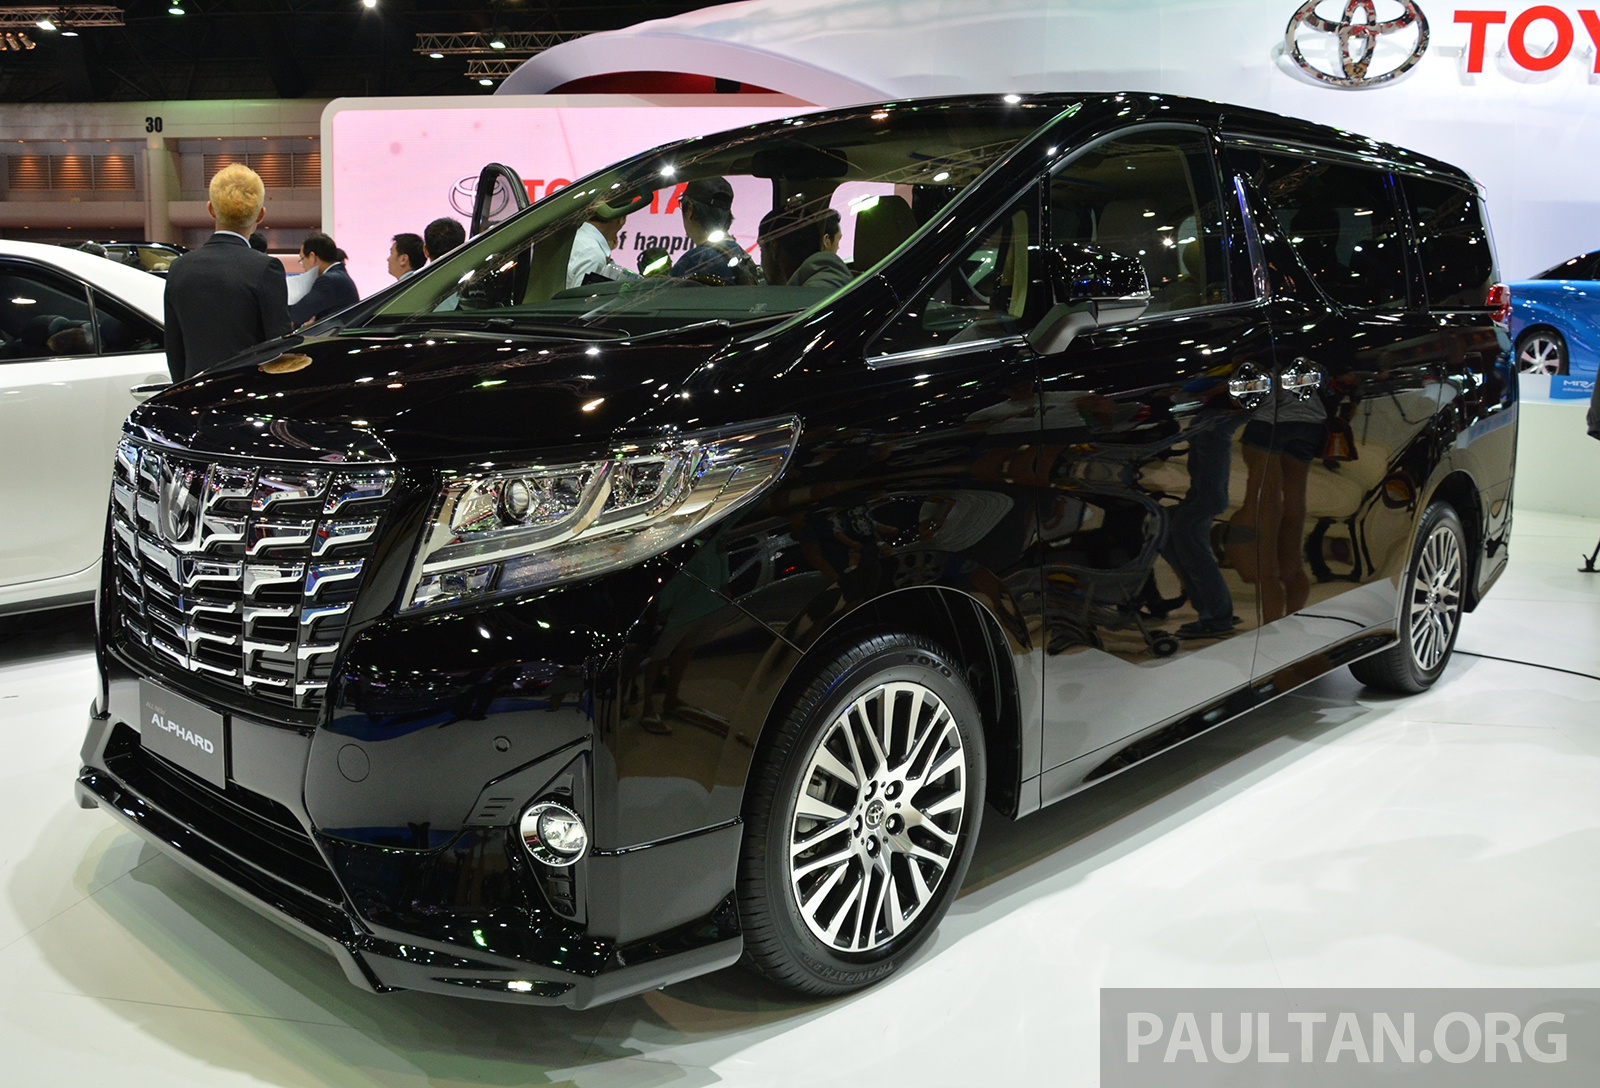 2015 Toyota Alphard, Vellfire launched in Thailand Paul Tan - Image 321059